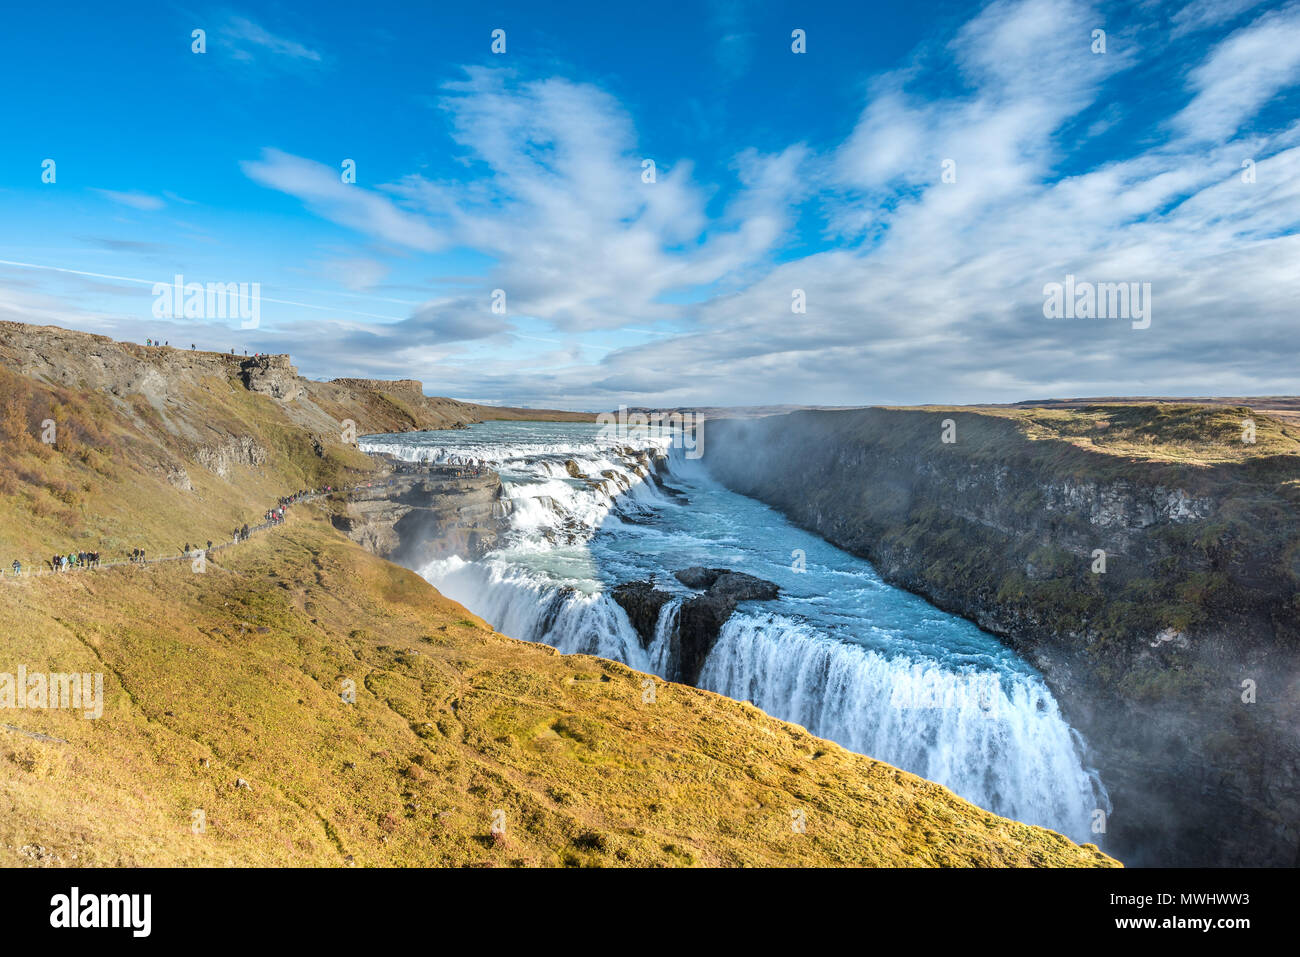 Gullfoss Waterfall at Golden Circle in Iceland - Stock Image